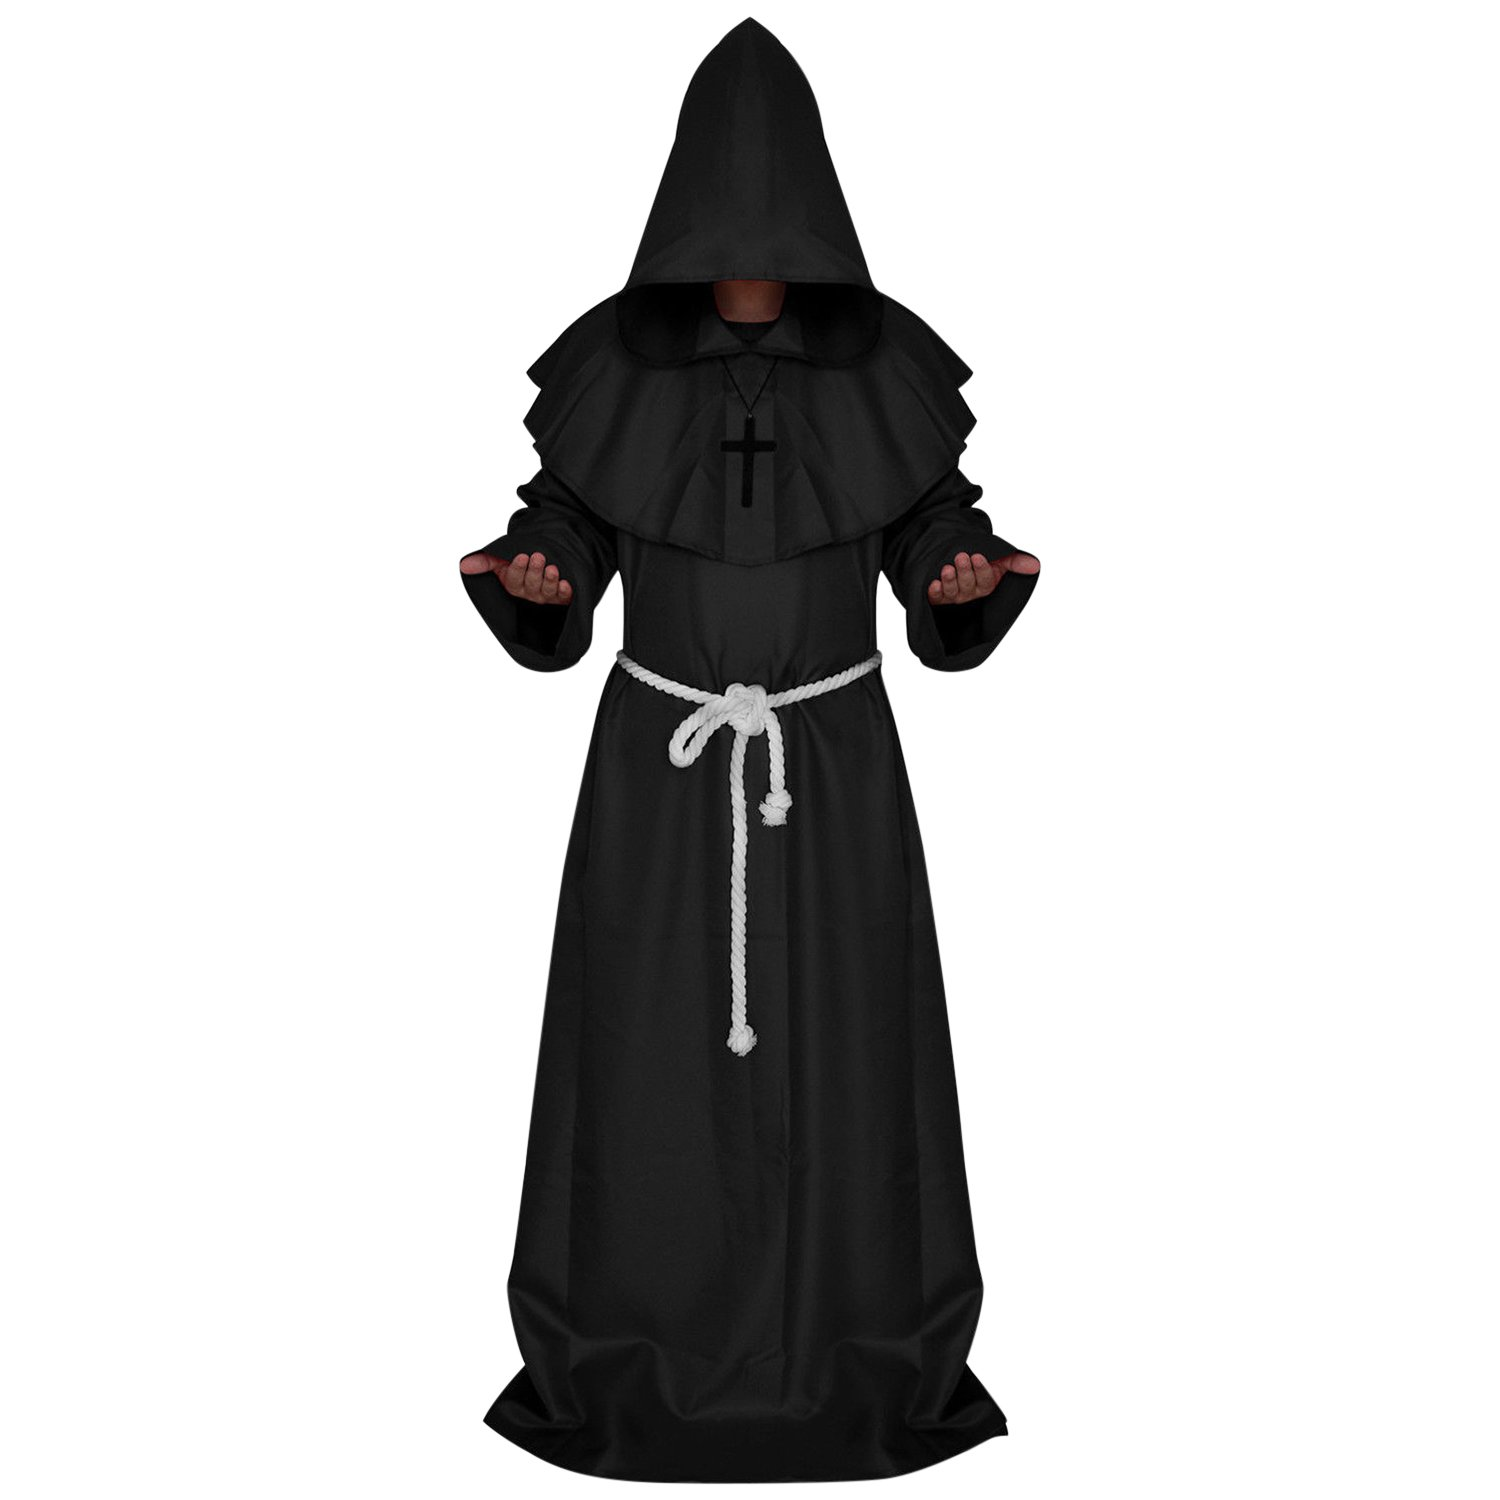 CHNS Halloween Cosplay Medieval Friar Monk Robe Priest Robe Costume Cloak